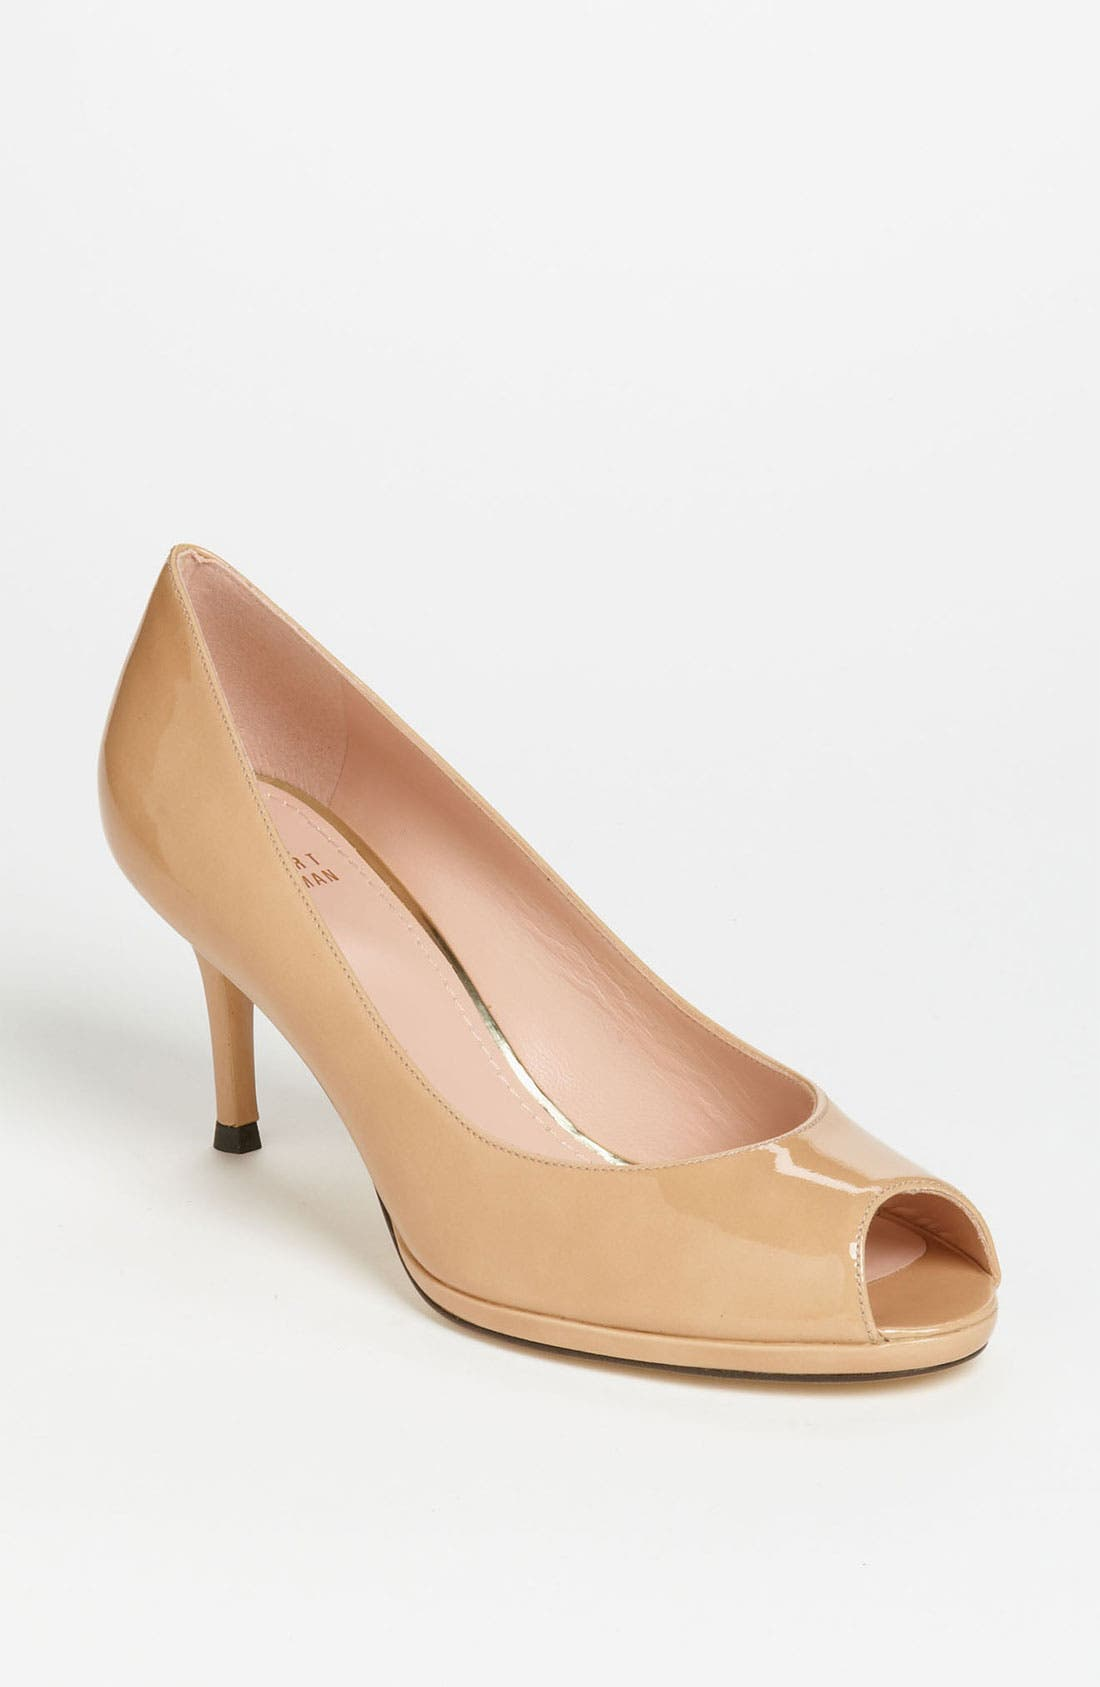 Main Image - Stuart Weitzman 'Polly' Pump (Exclusive Color)